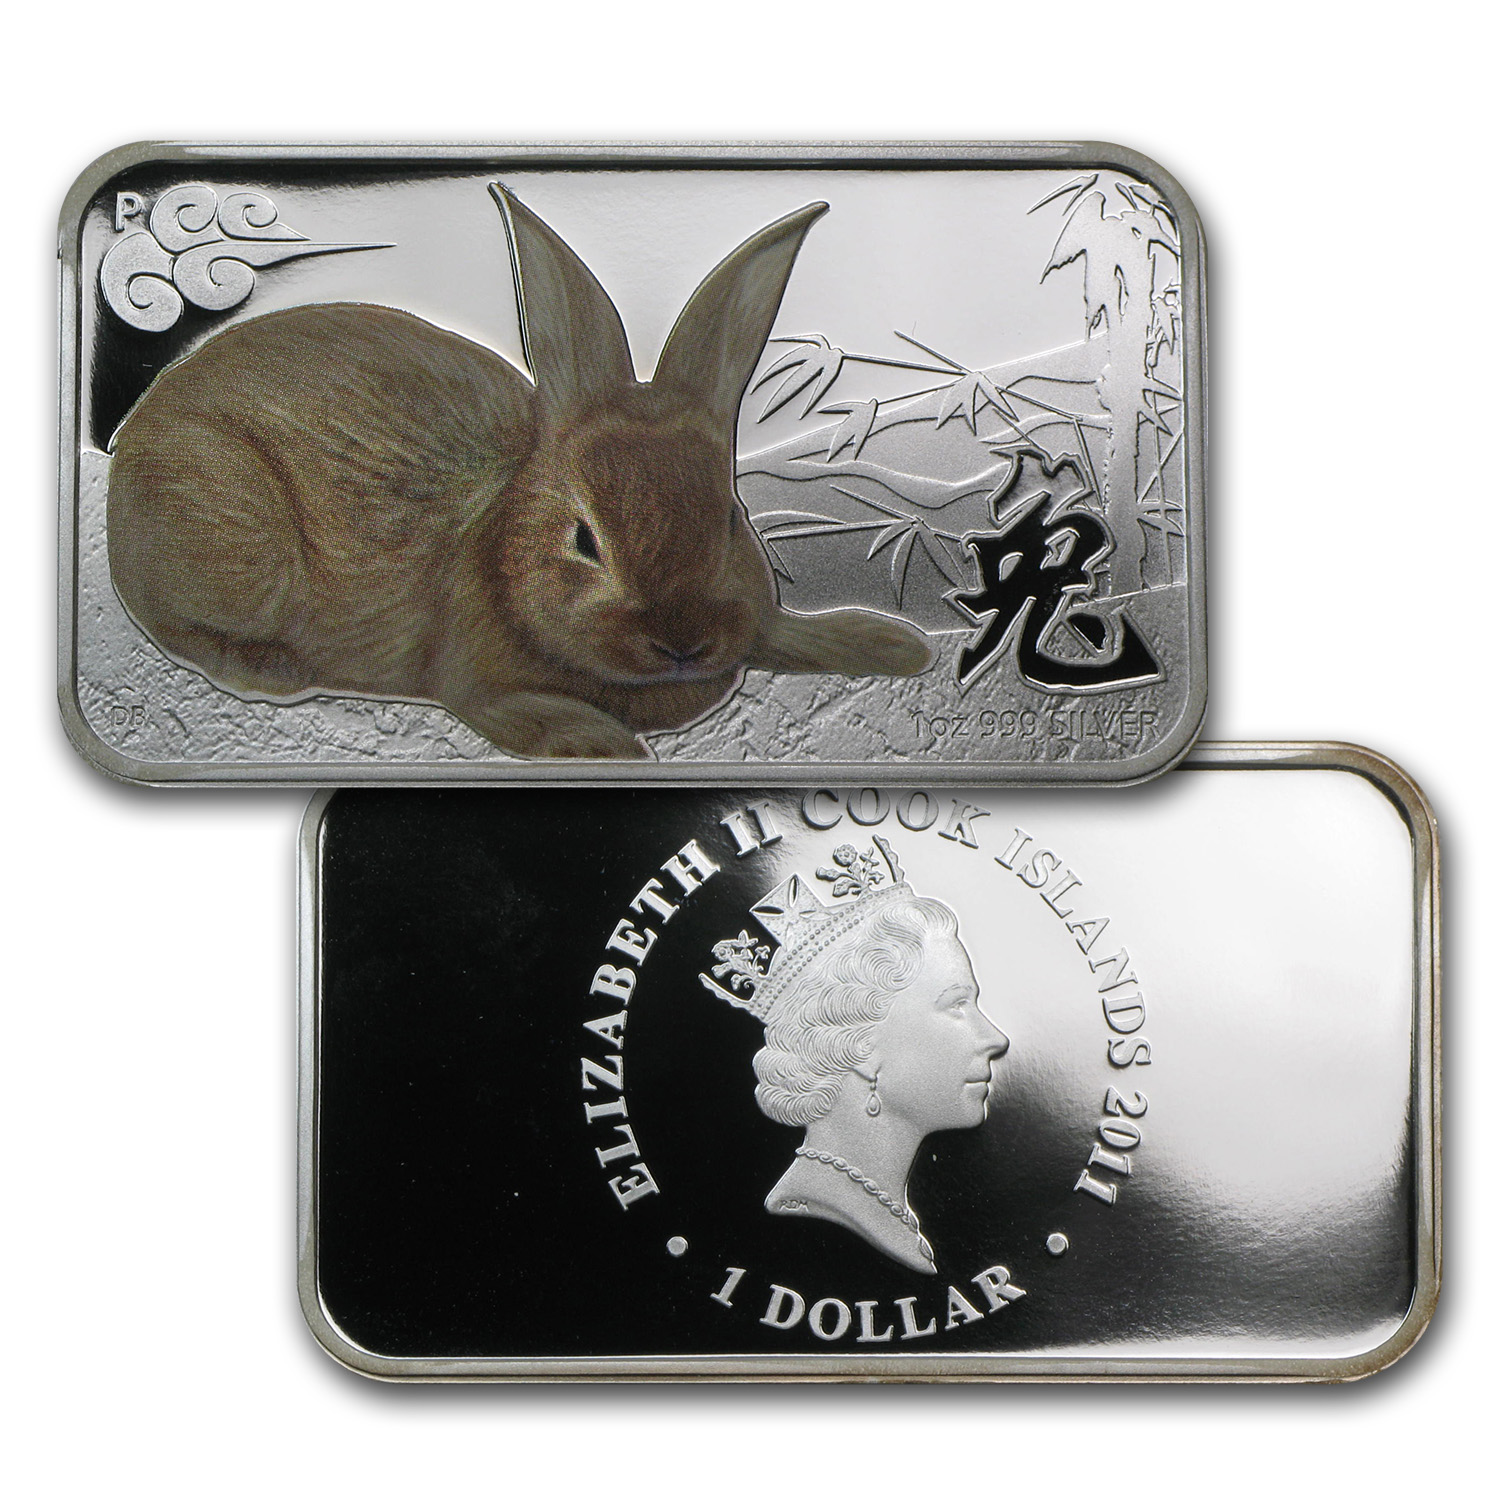 2011 Australia 4-Coin 1 oz Silver Rabbit Proof Set (Rectangles)